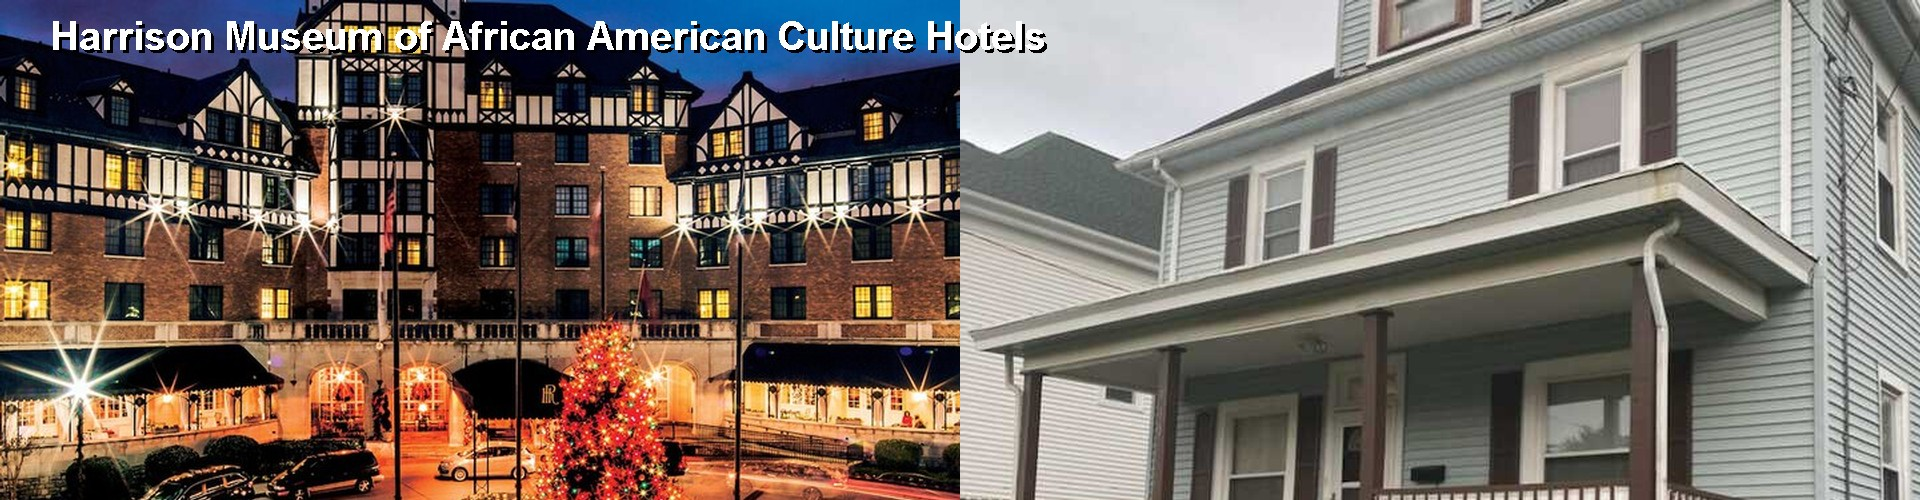 5 Best Hotels near Harrison Museum of African American Culture